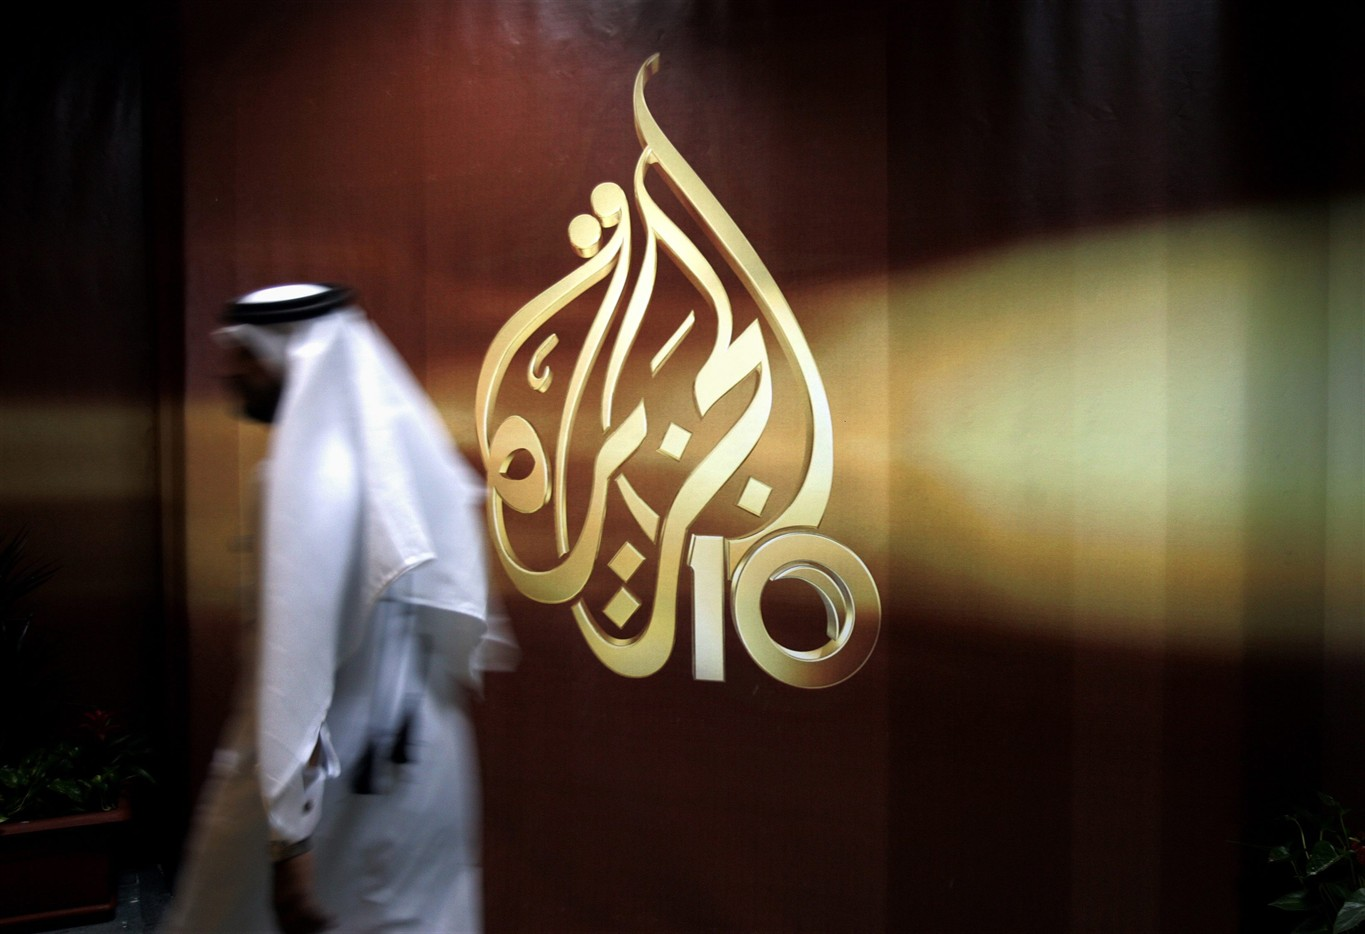 Egypt blocks 21 websites including Al Jazeera: security sources